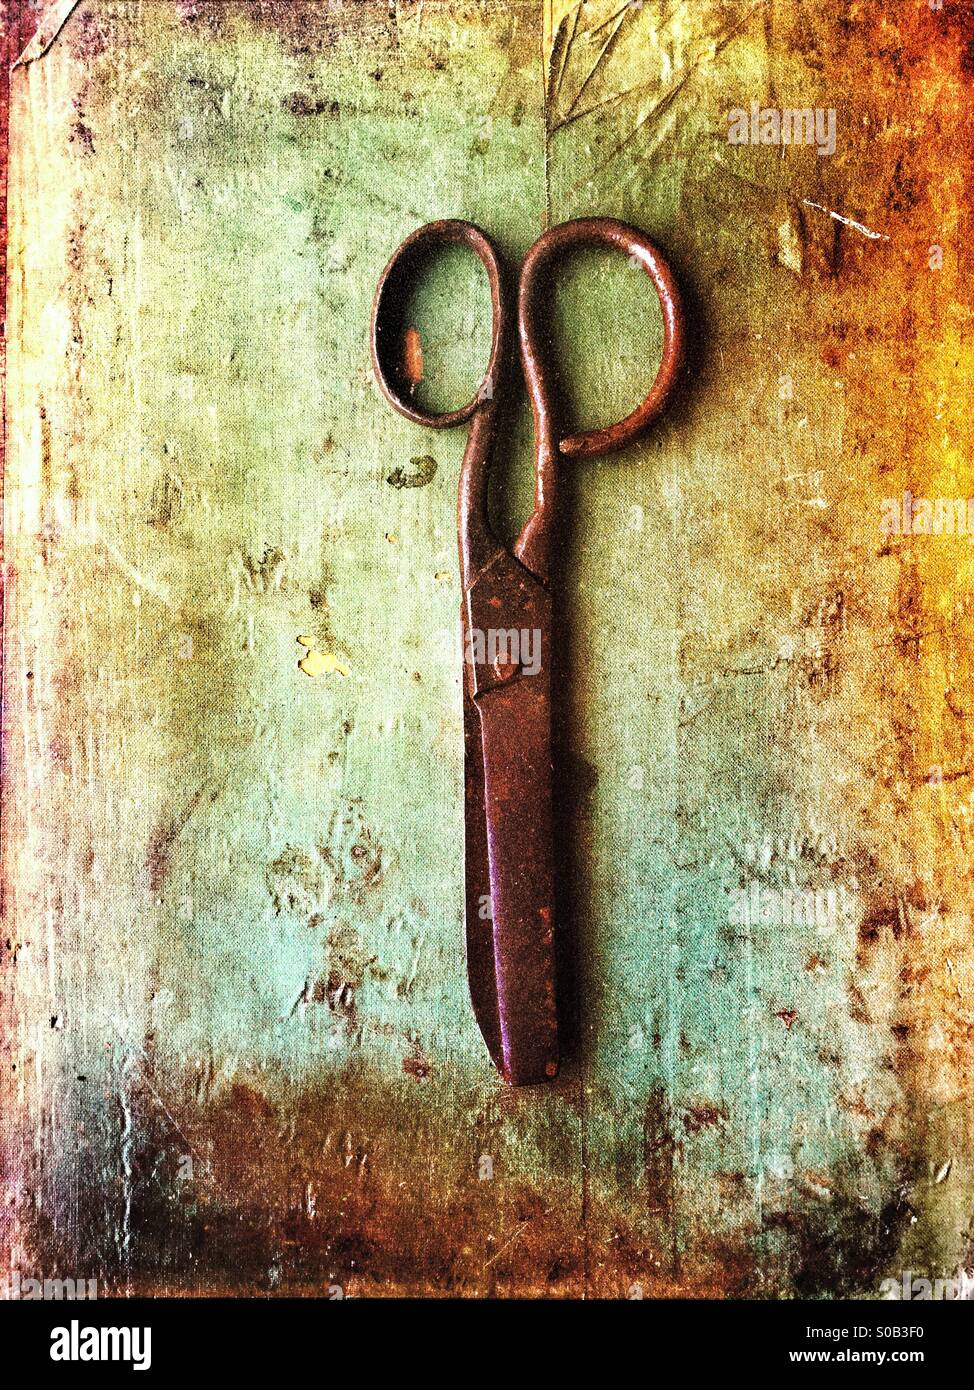 Old rusty scissors - Stock Image